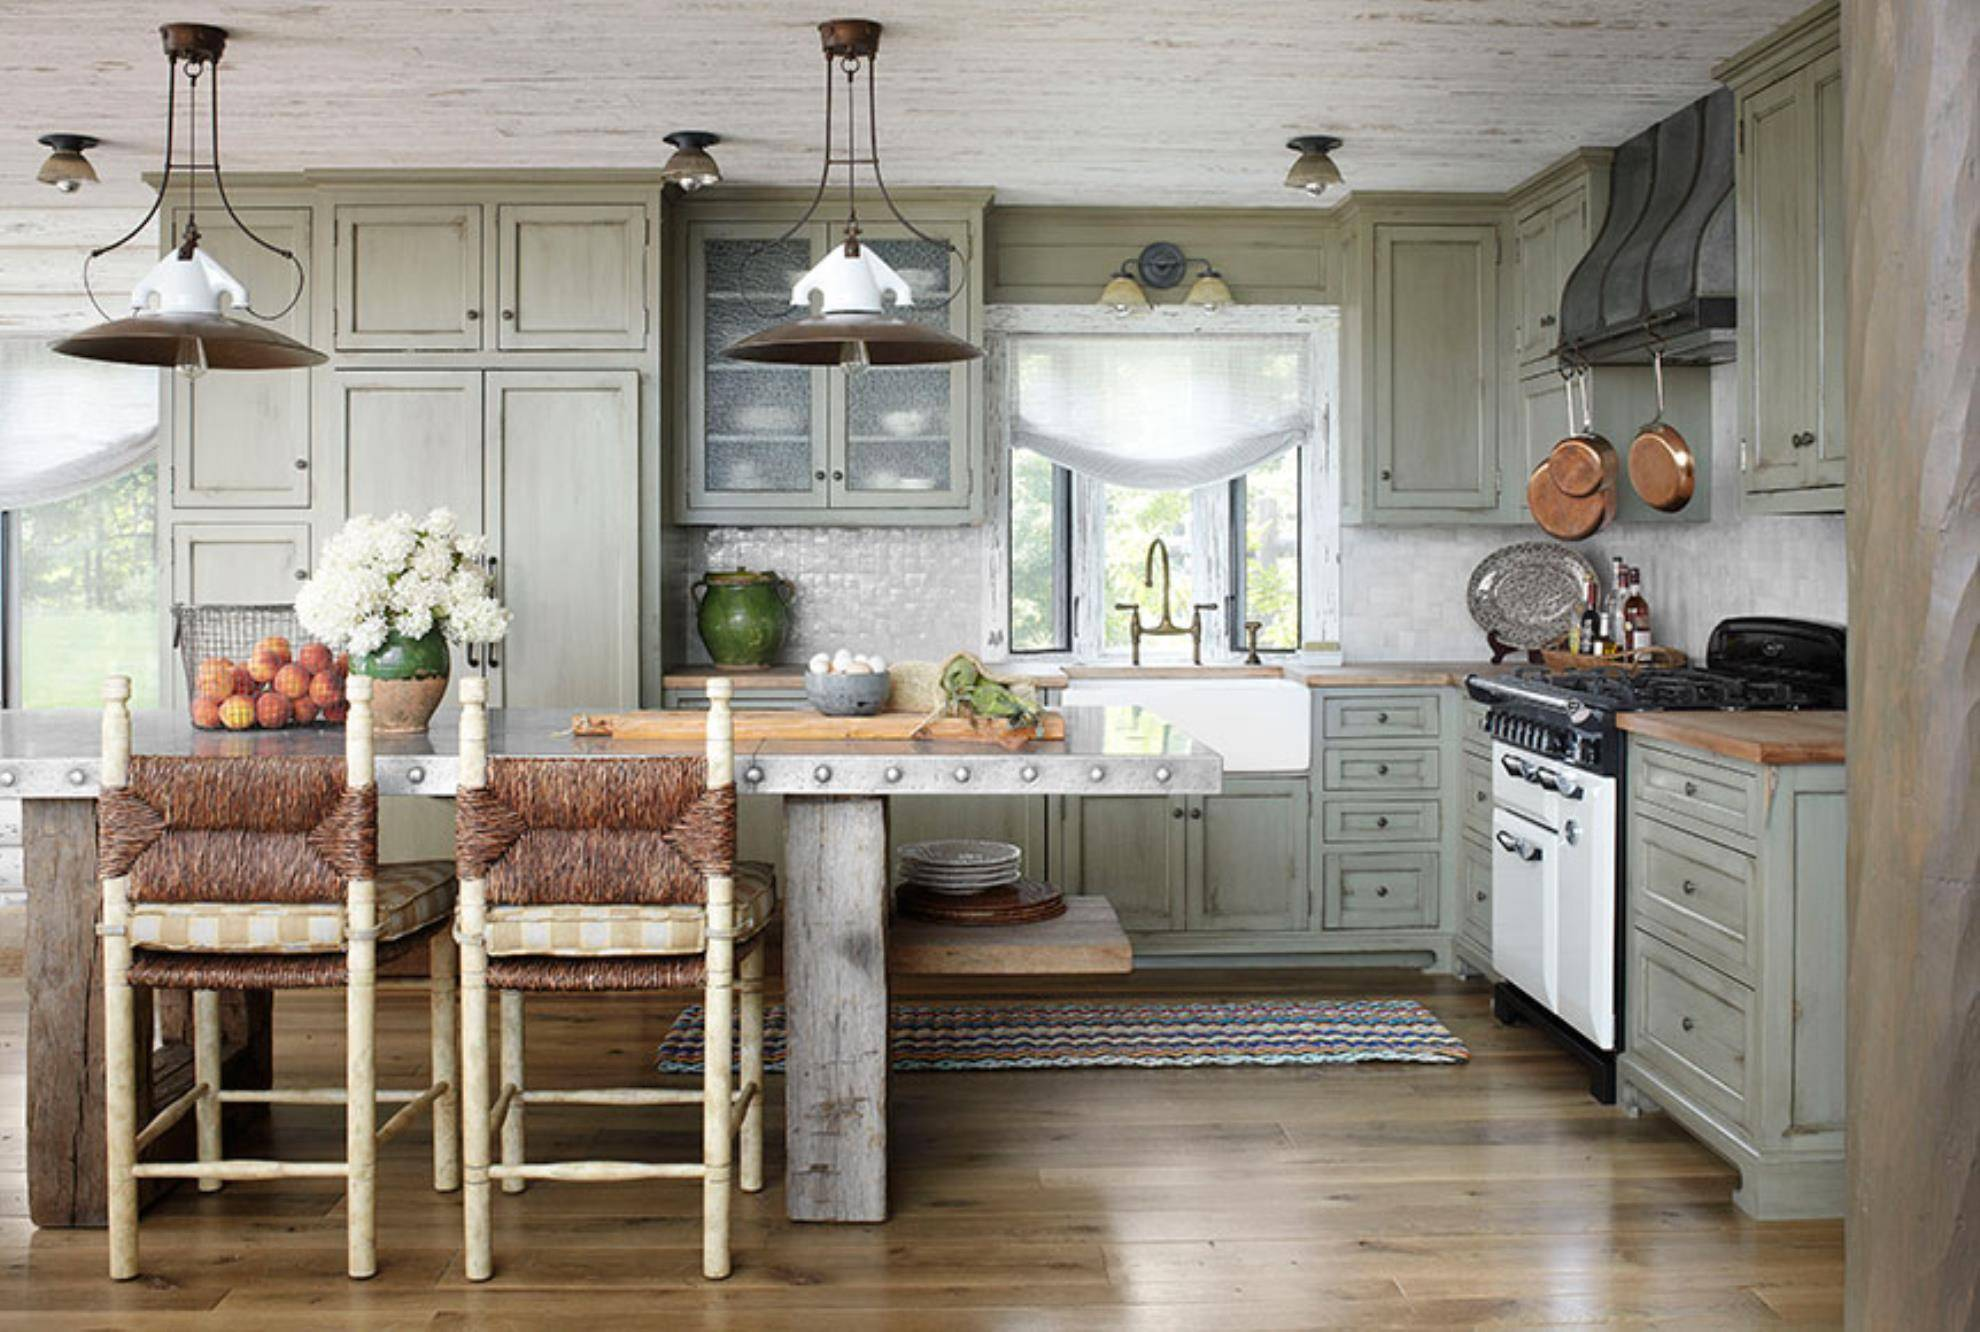 Traditional Rustic Kitchen Farmhouse Chic Decor